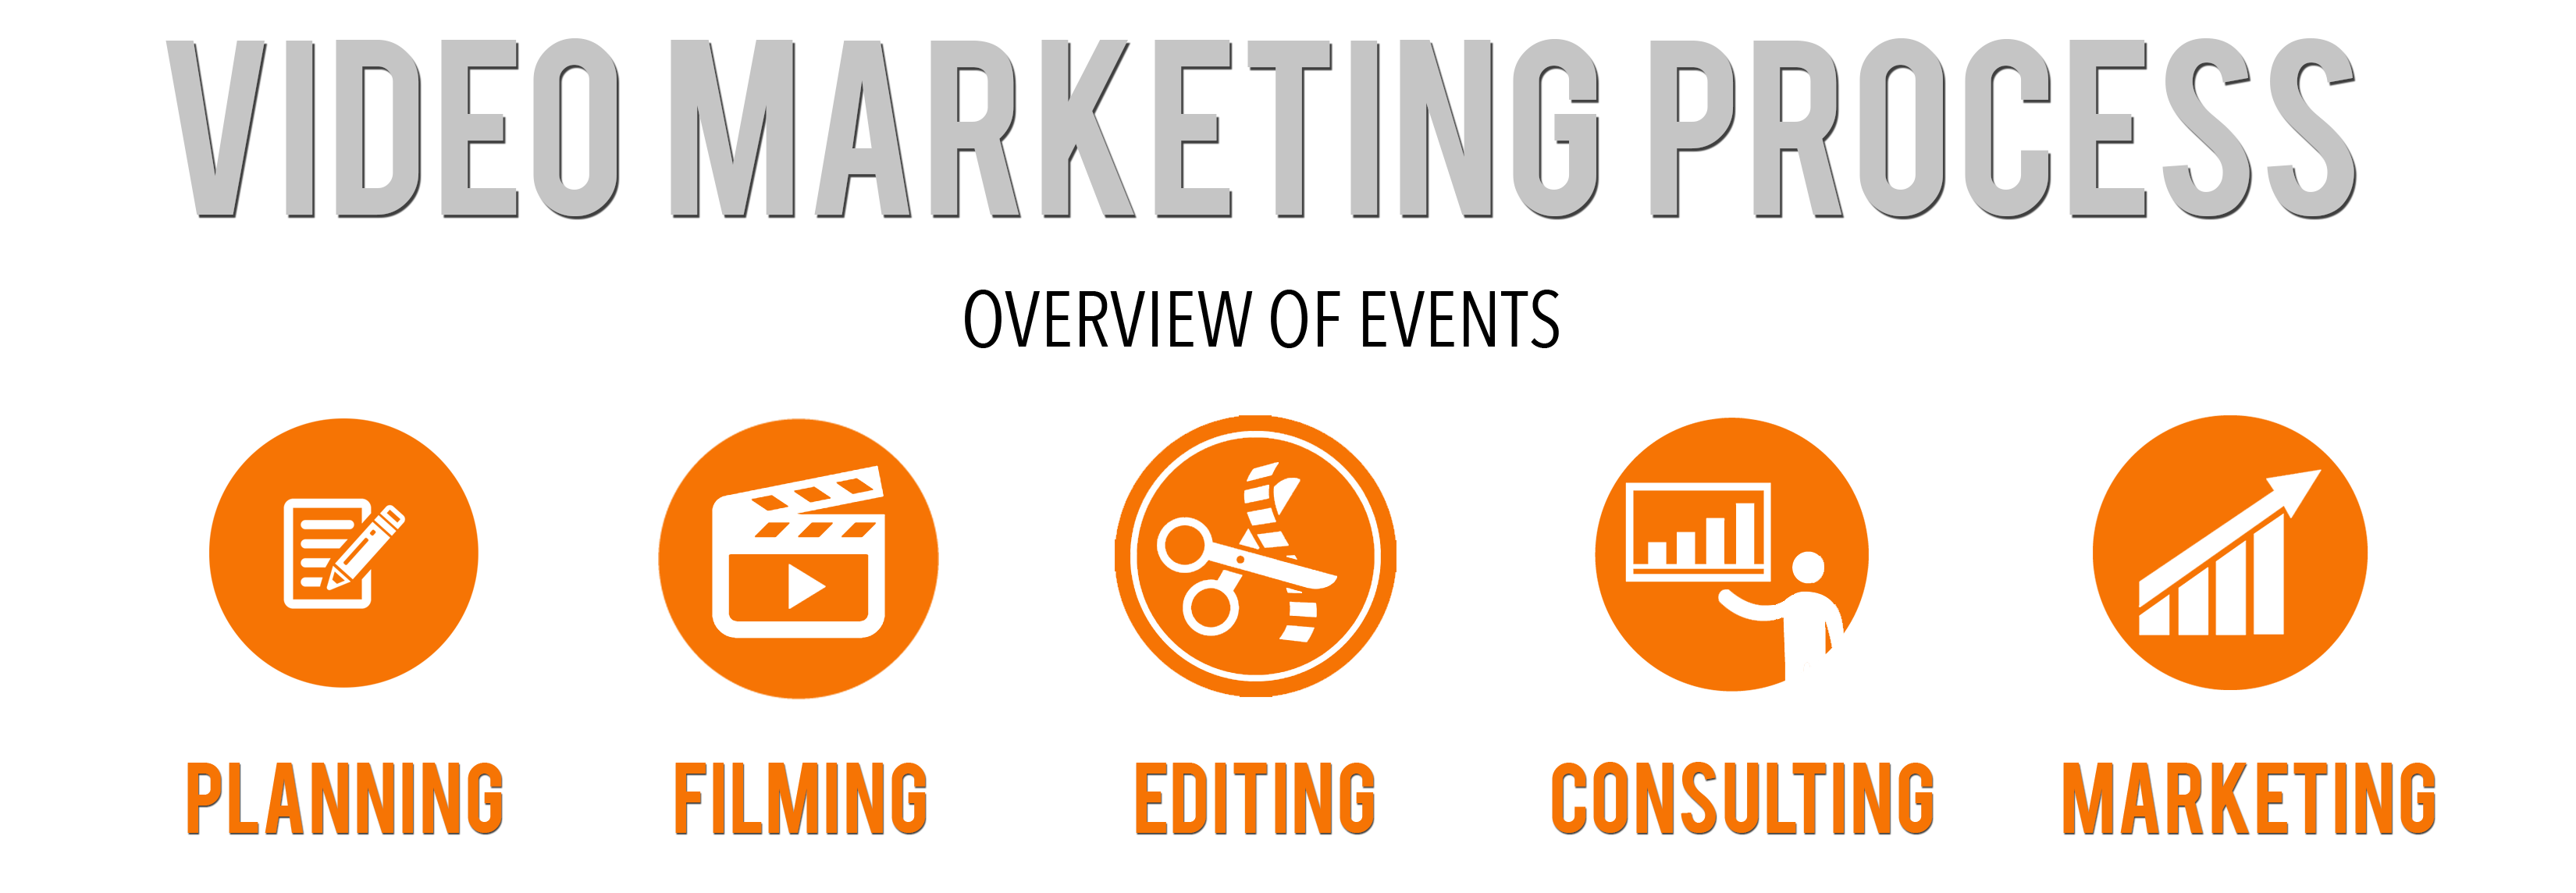 video marketing process_RAW3